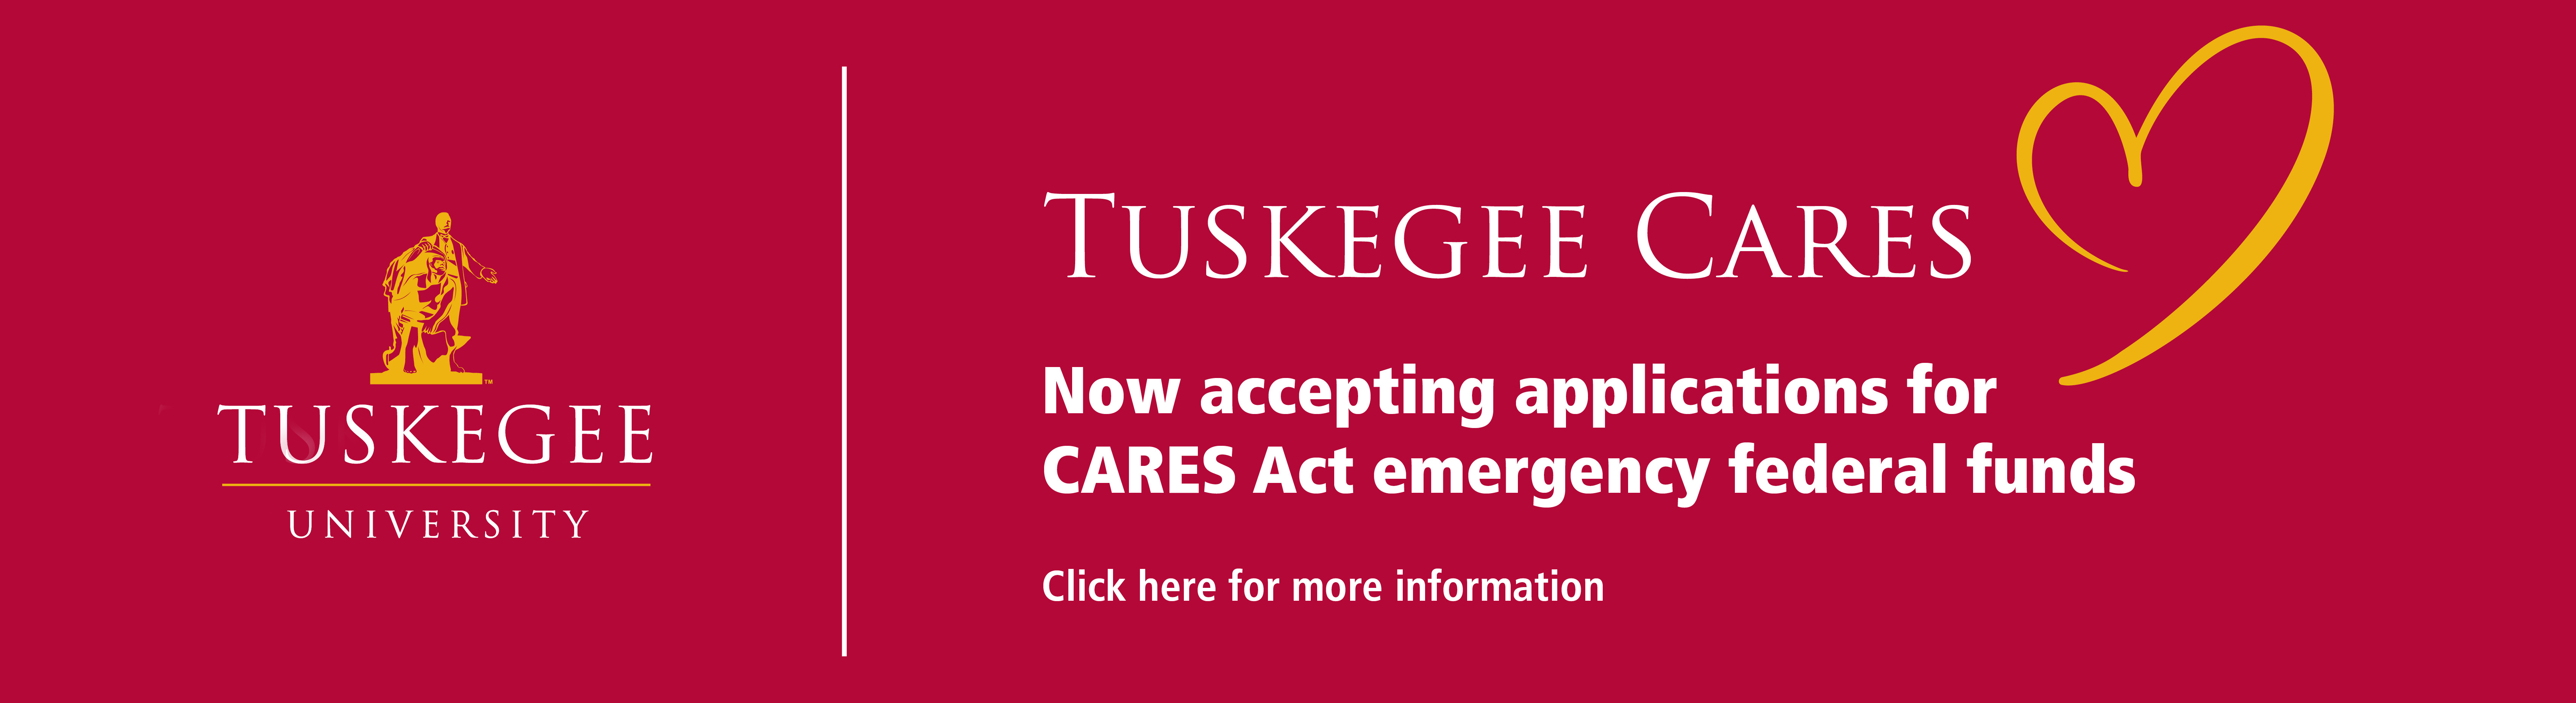 CARES Act student emergency fund image